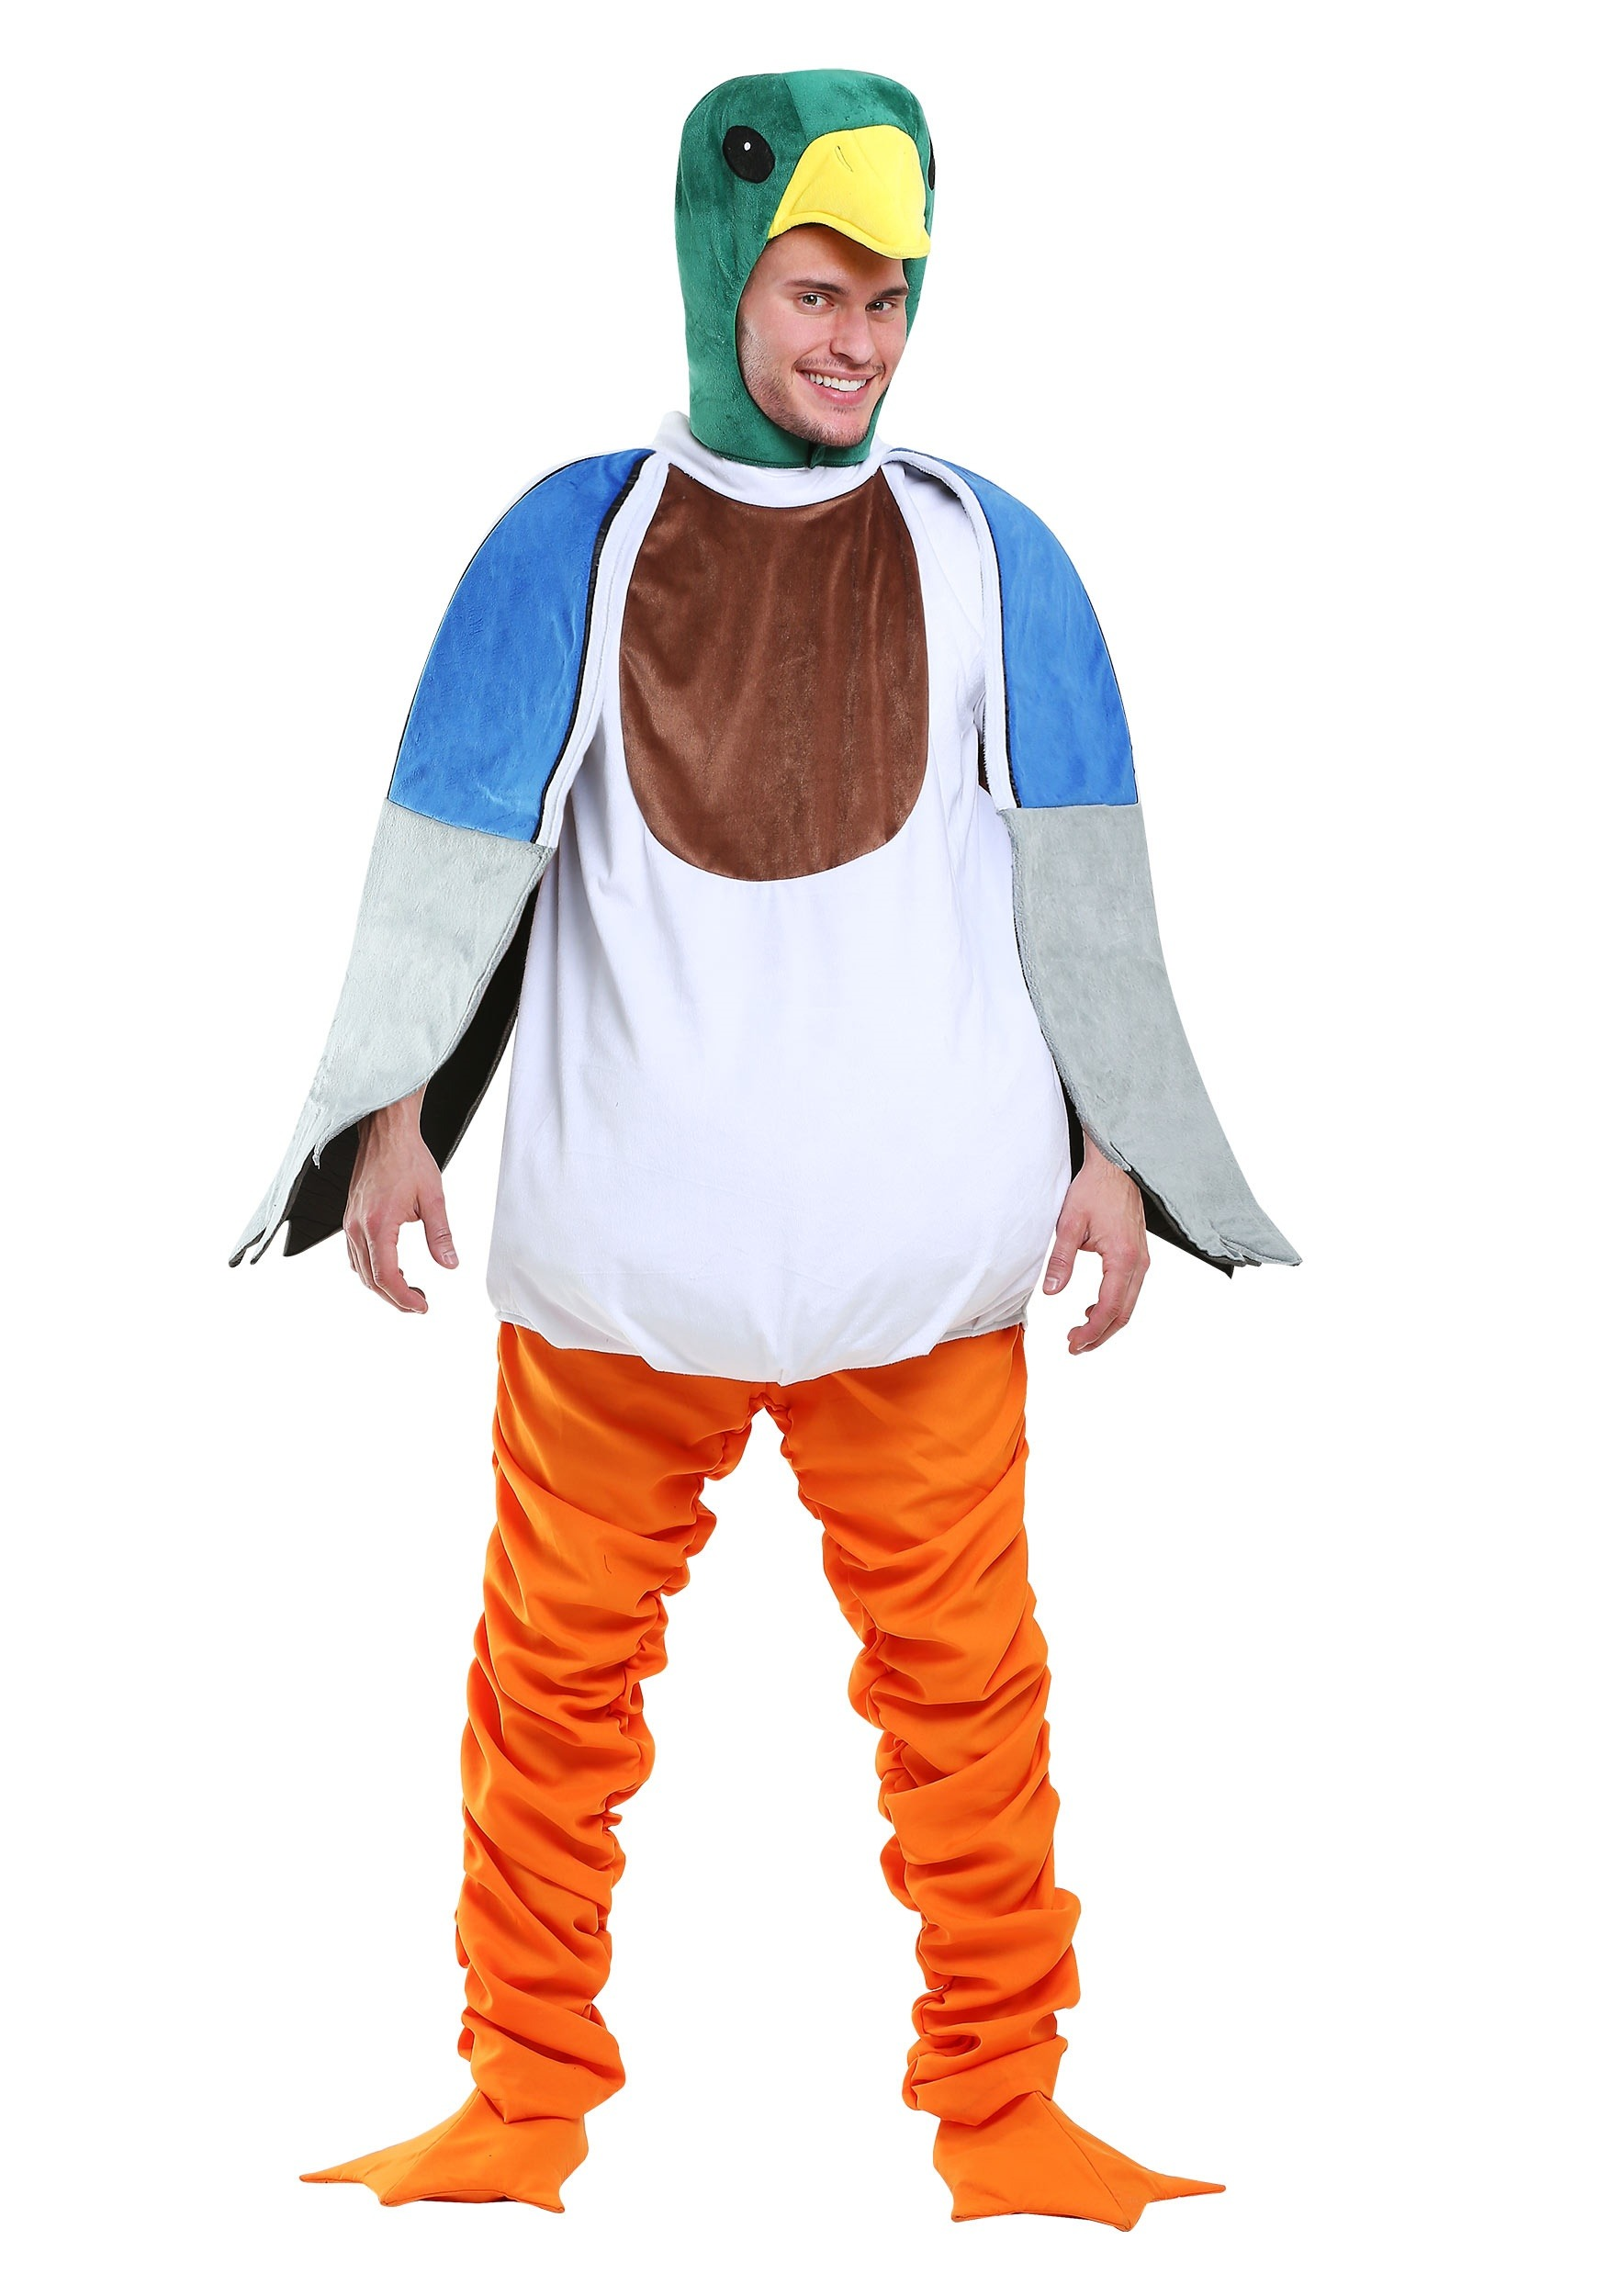 Mallard Duck Fancy Dress Costume for Men